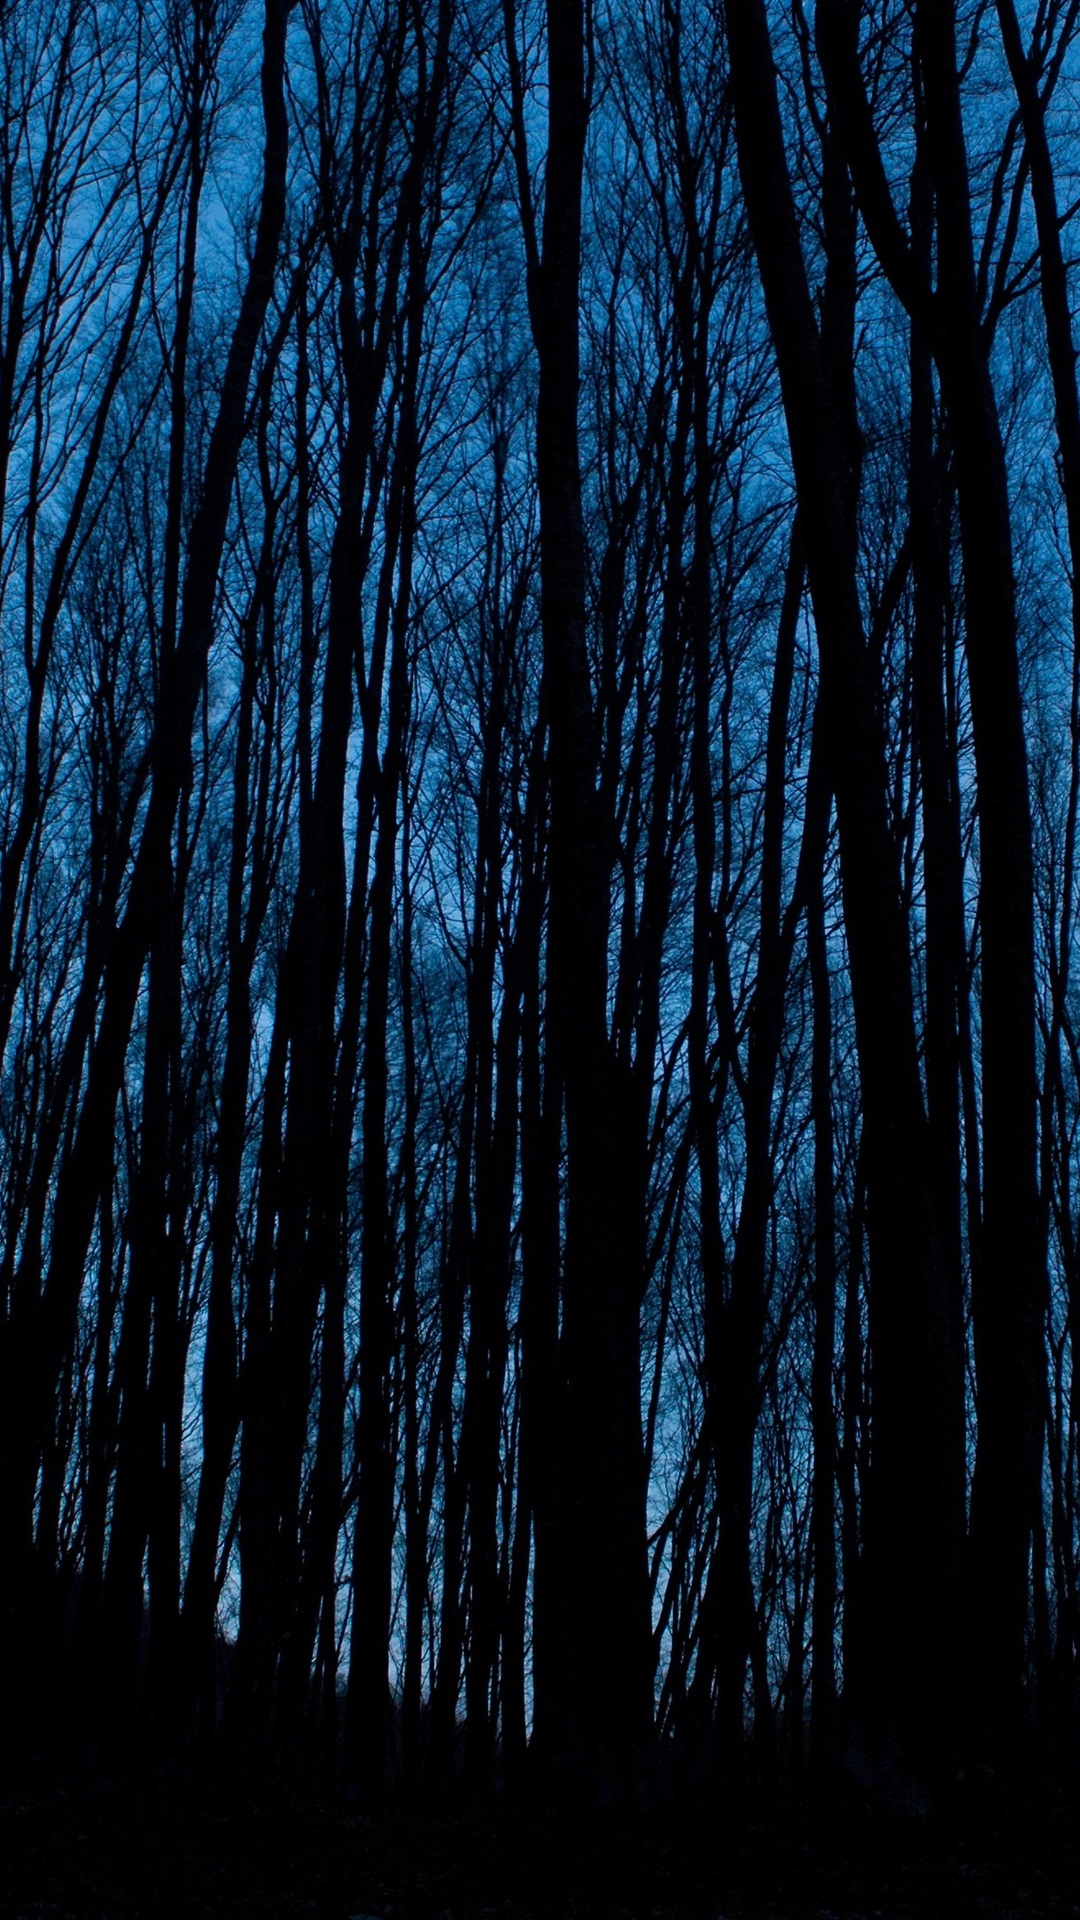 Wallpaper Night Forest Trees Darkness 3840x2160 Uhd 4k Picture Image